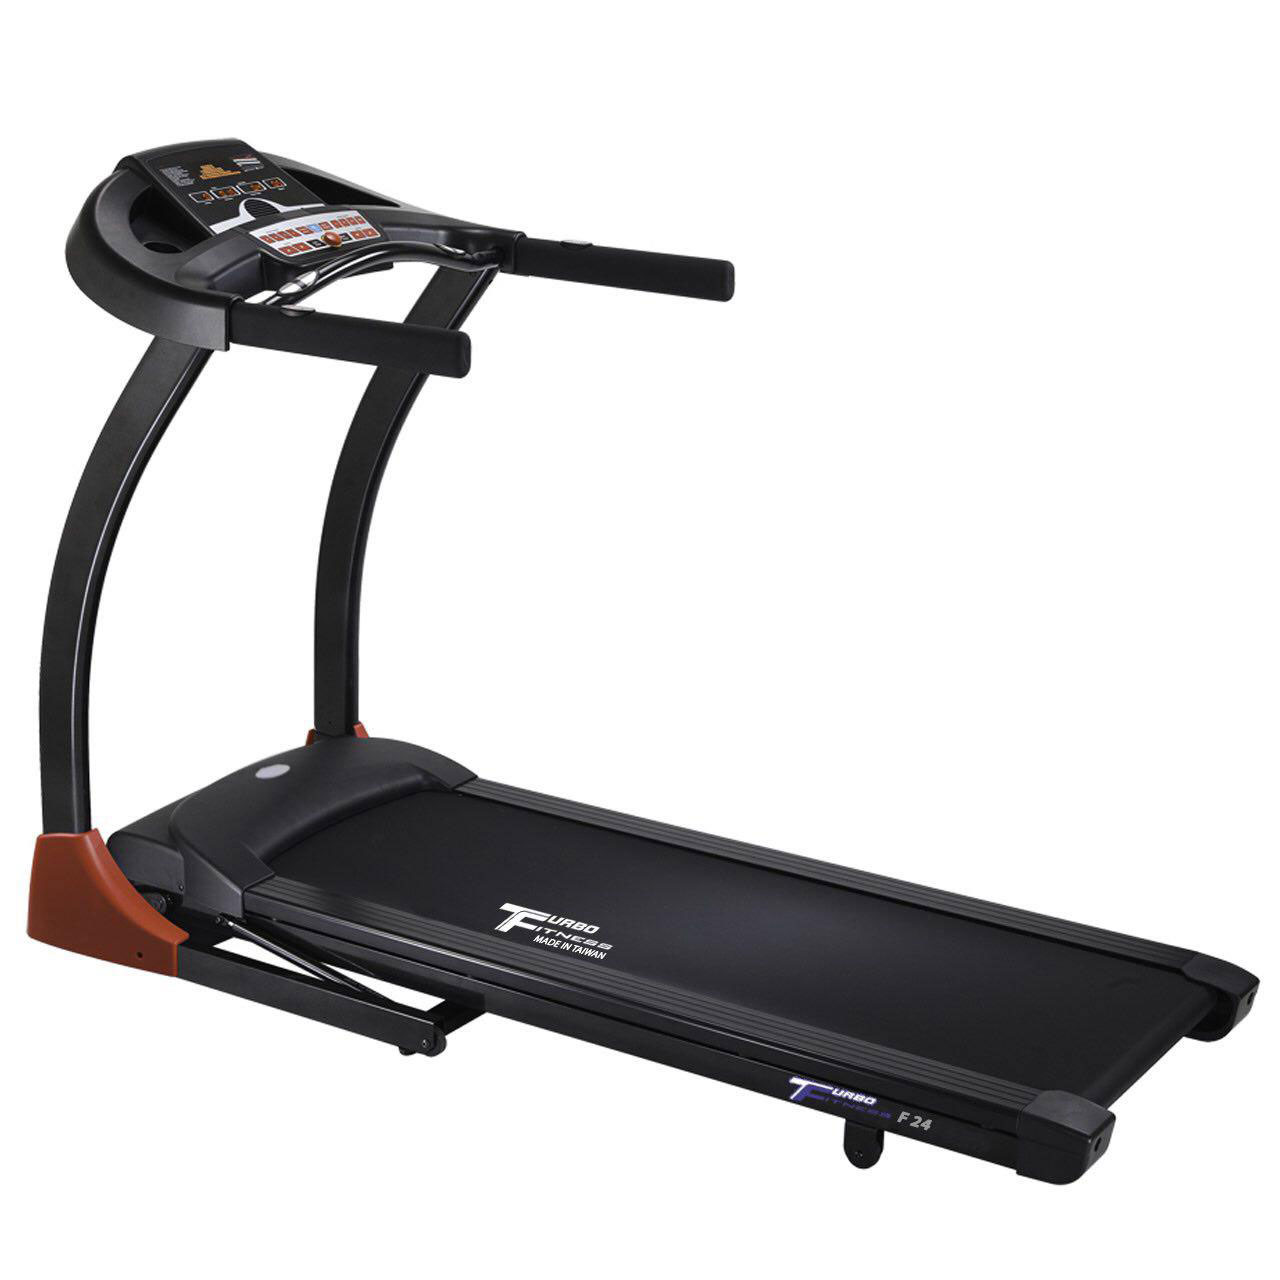 Turbo Fitness F24 Treadmills